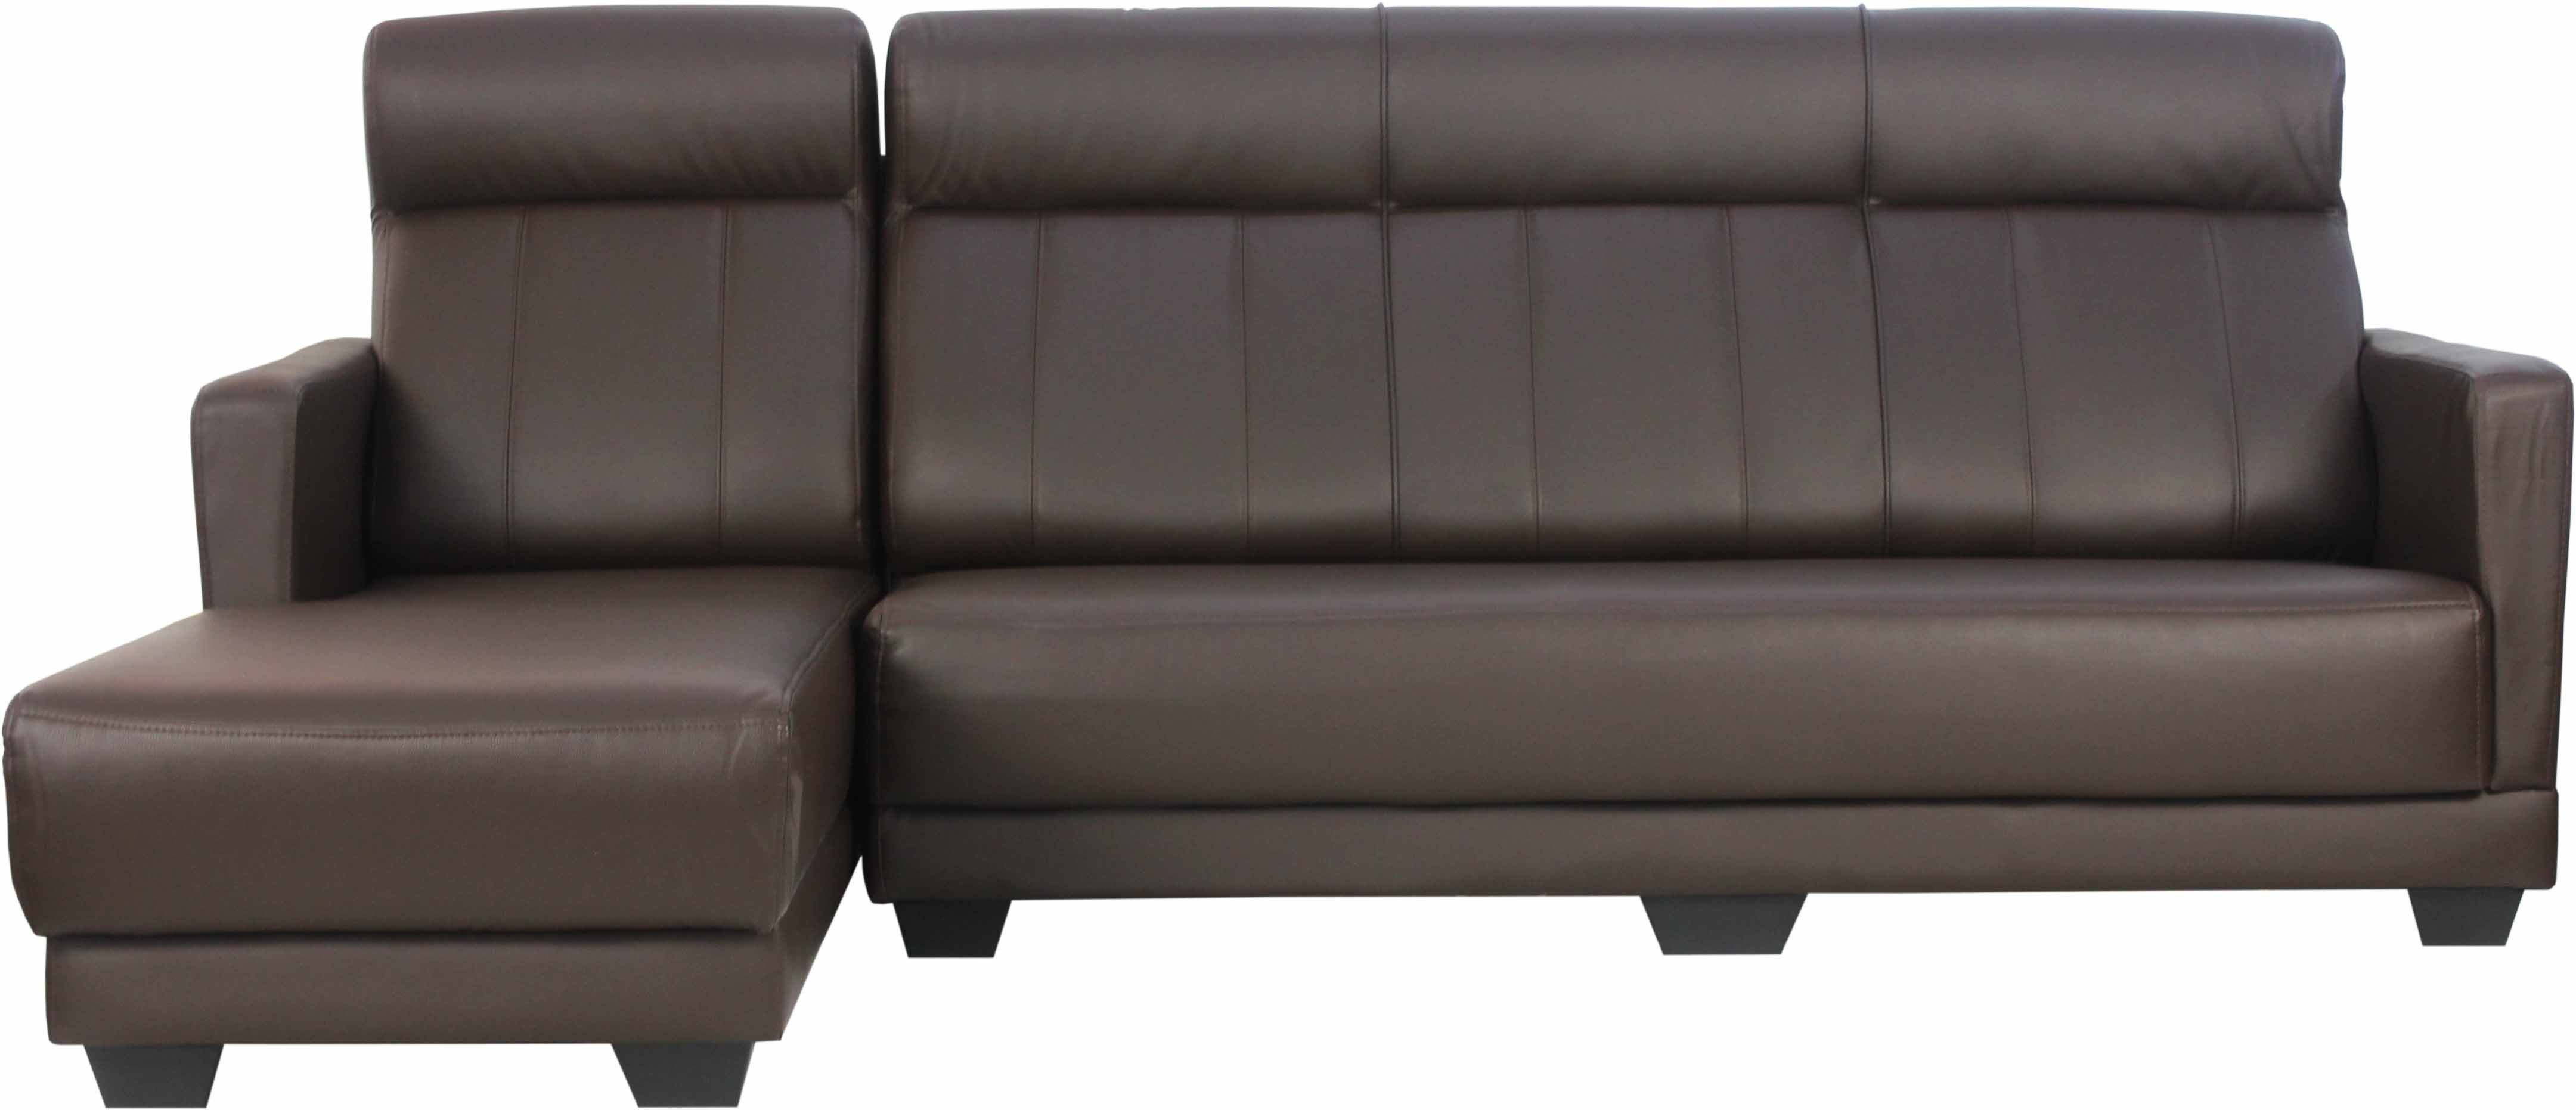 Stacy 4 seater l shaped sofa set furniture home d cor for 9 seater sofa set designs